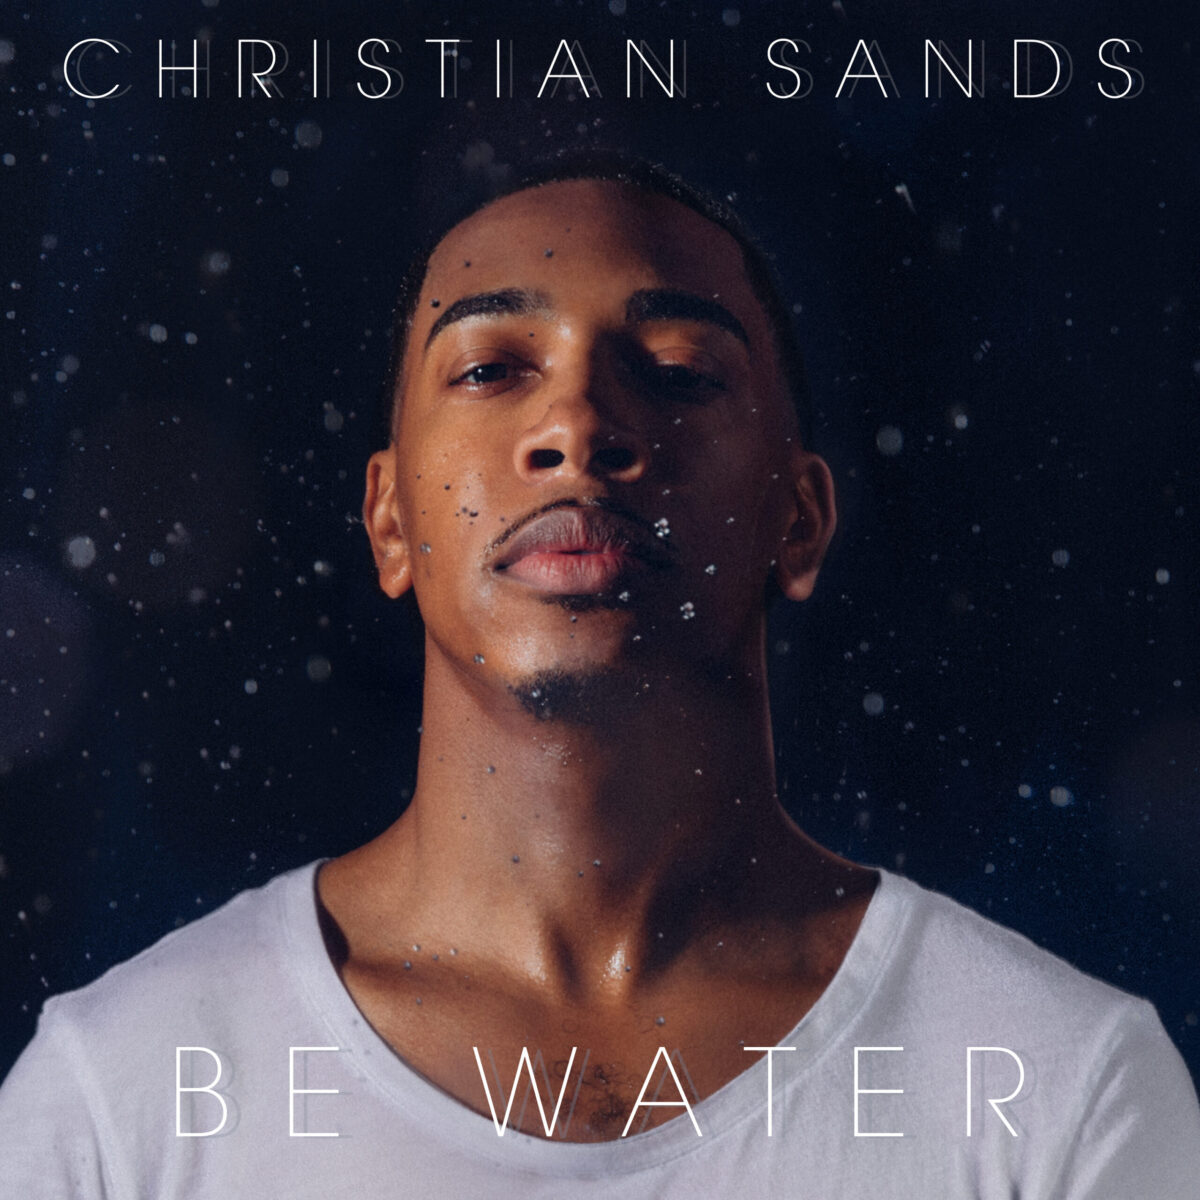 MAC 1170 Christian Sands_Be Water cover 3000x3000 rgb